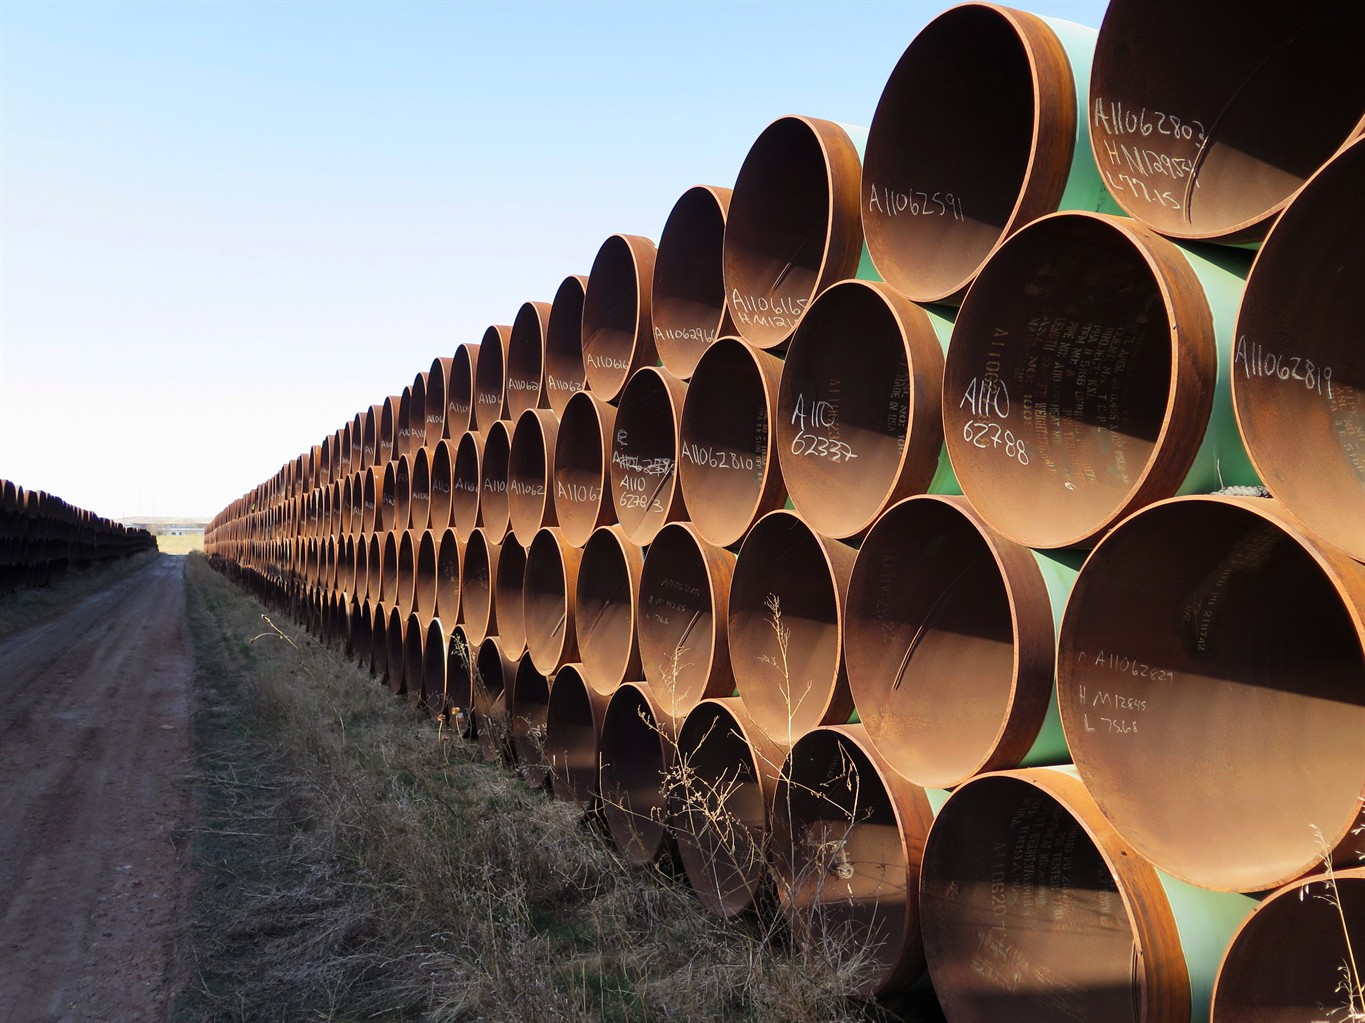 Alternative Keystone XL Pipeline Approved, Clearing Way For 1200 Mile Oil Pipeline